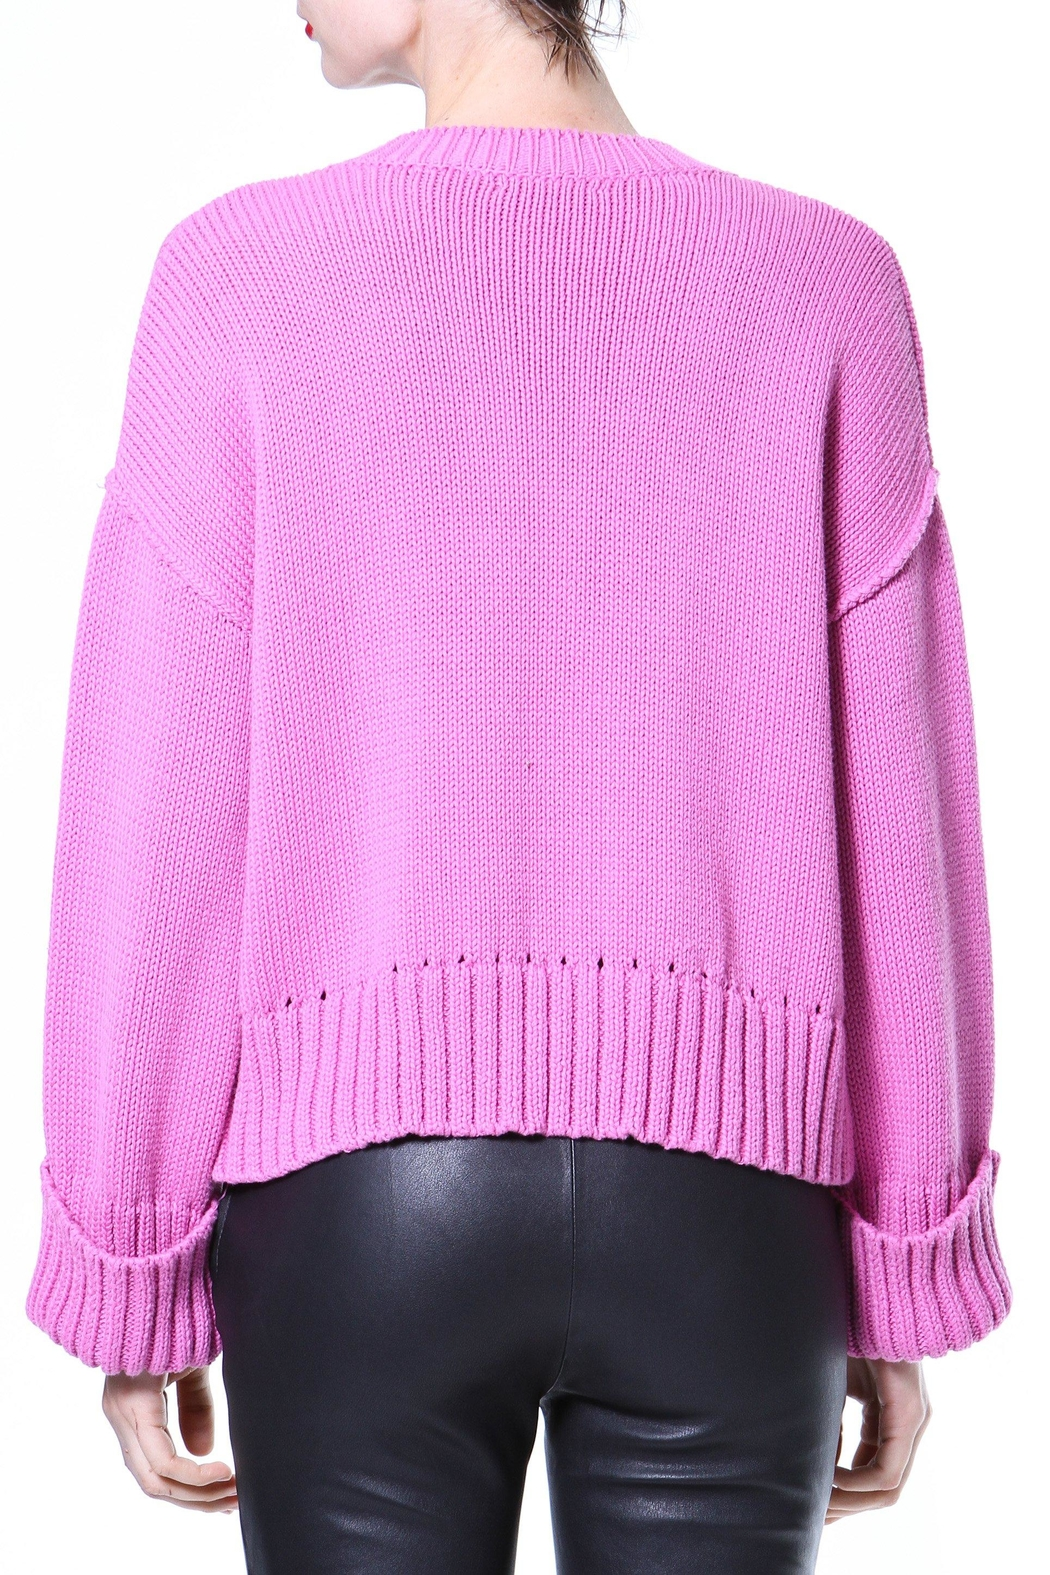 Madonna & Co Pink Ribbed Trim Sweater - Front Full Image